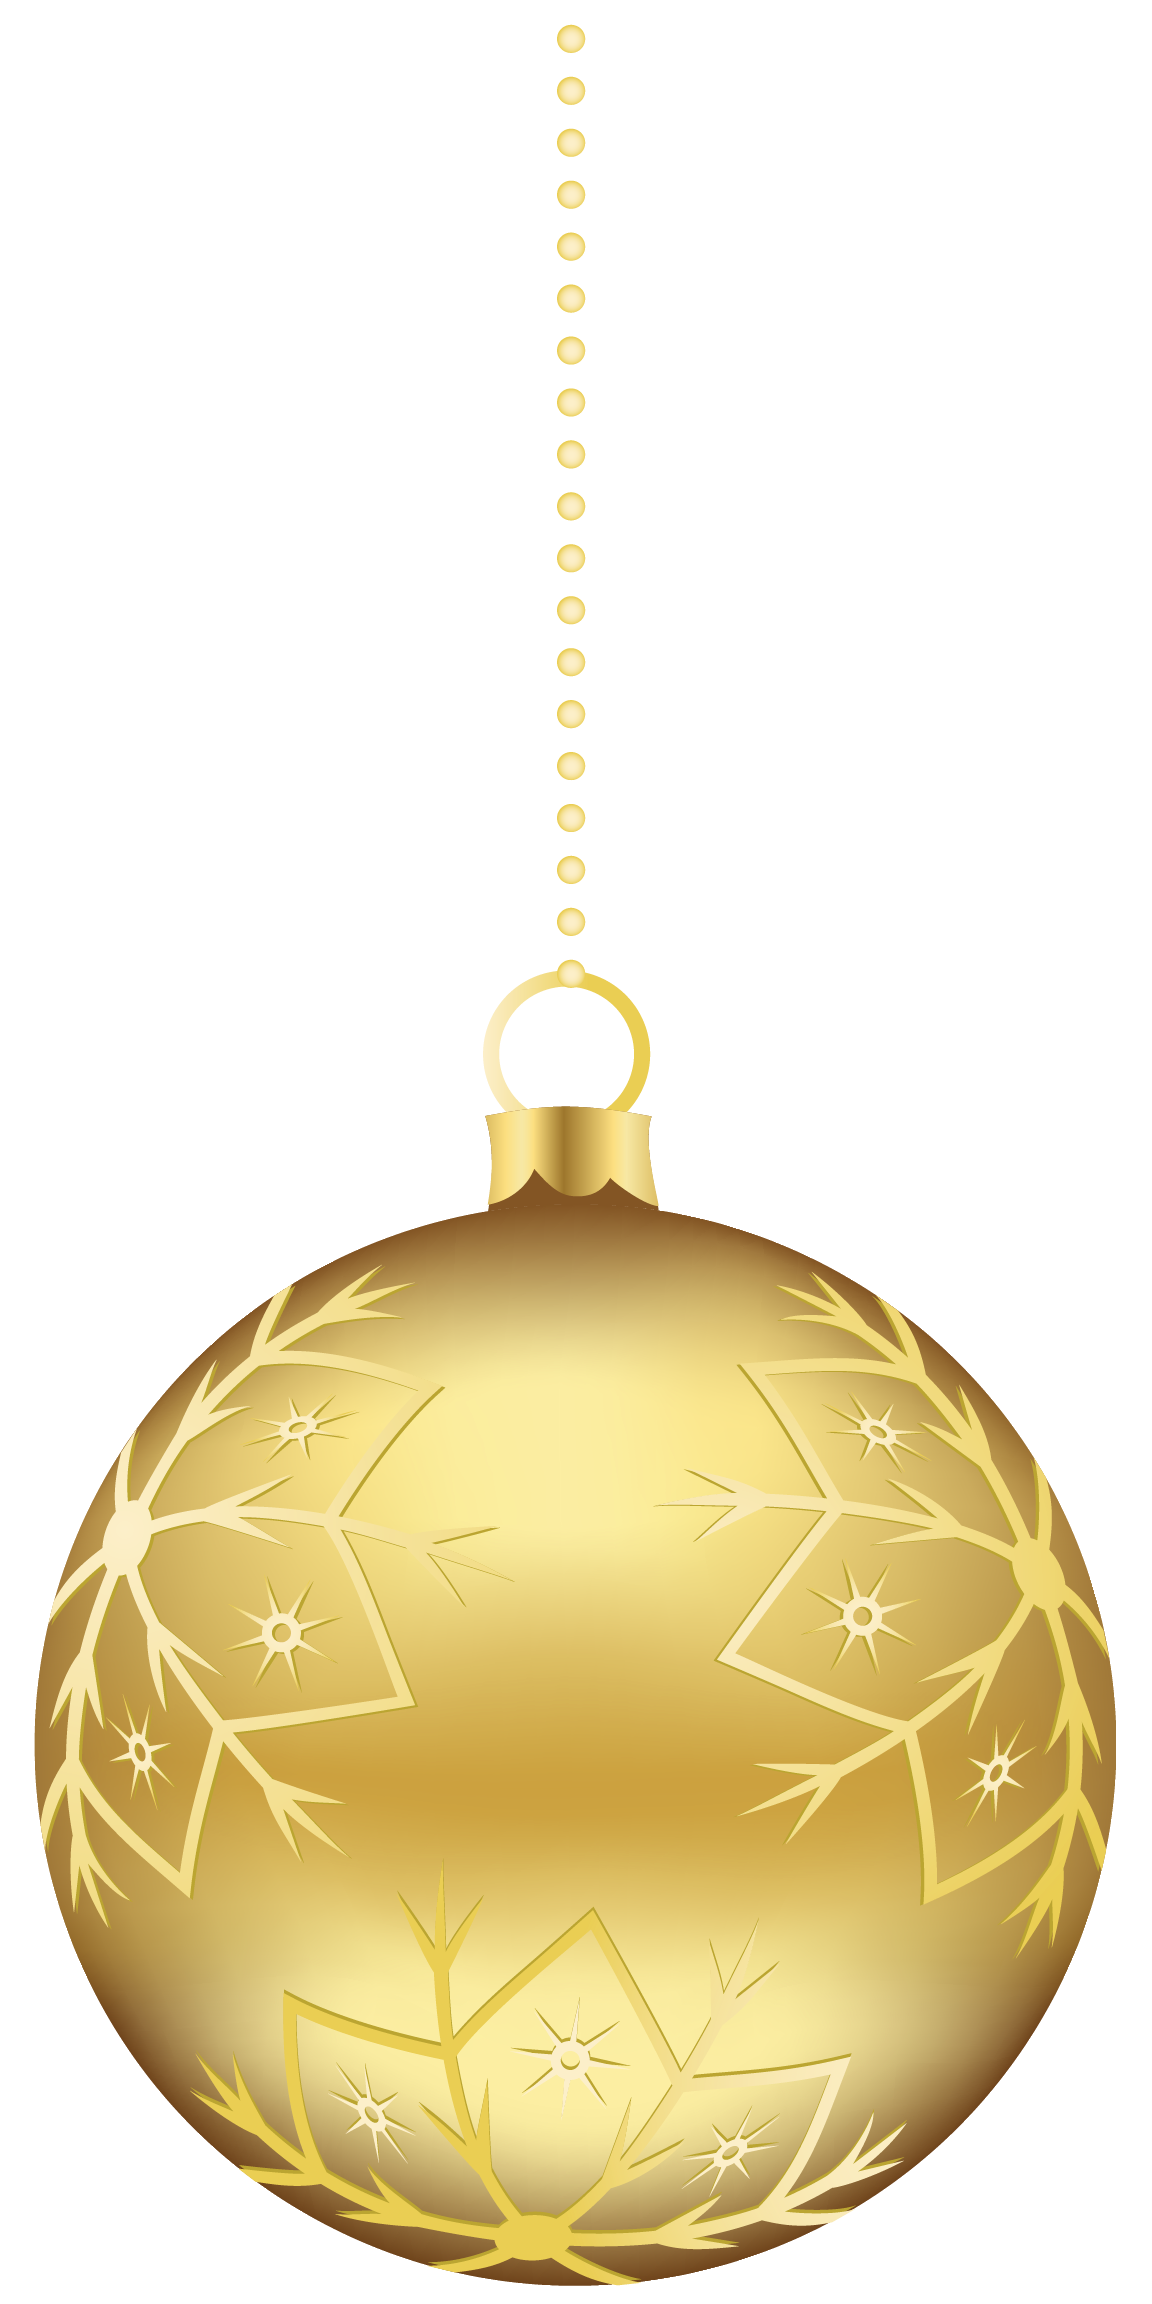 Gold Christmas Ornaments PNG Clipart #46350.